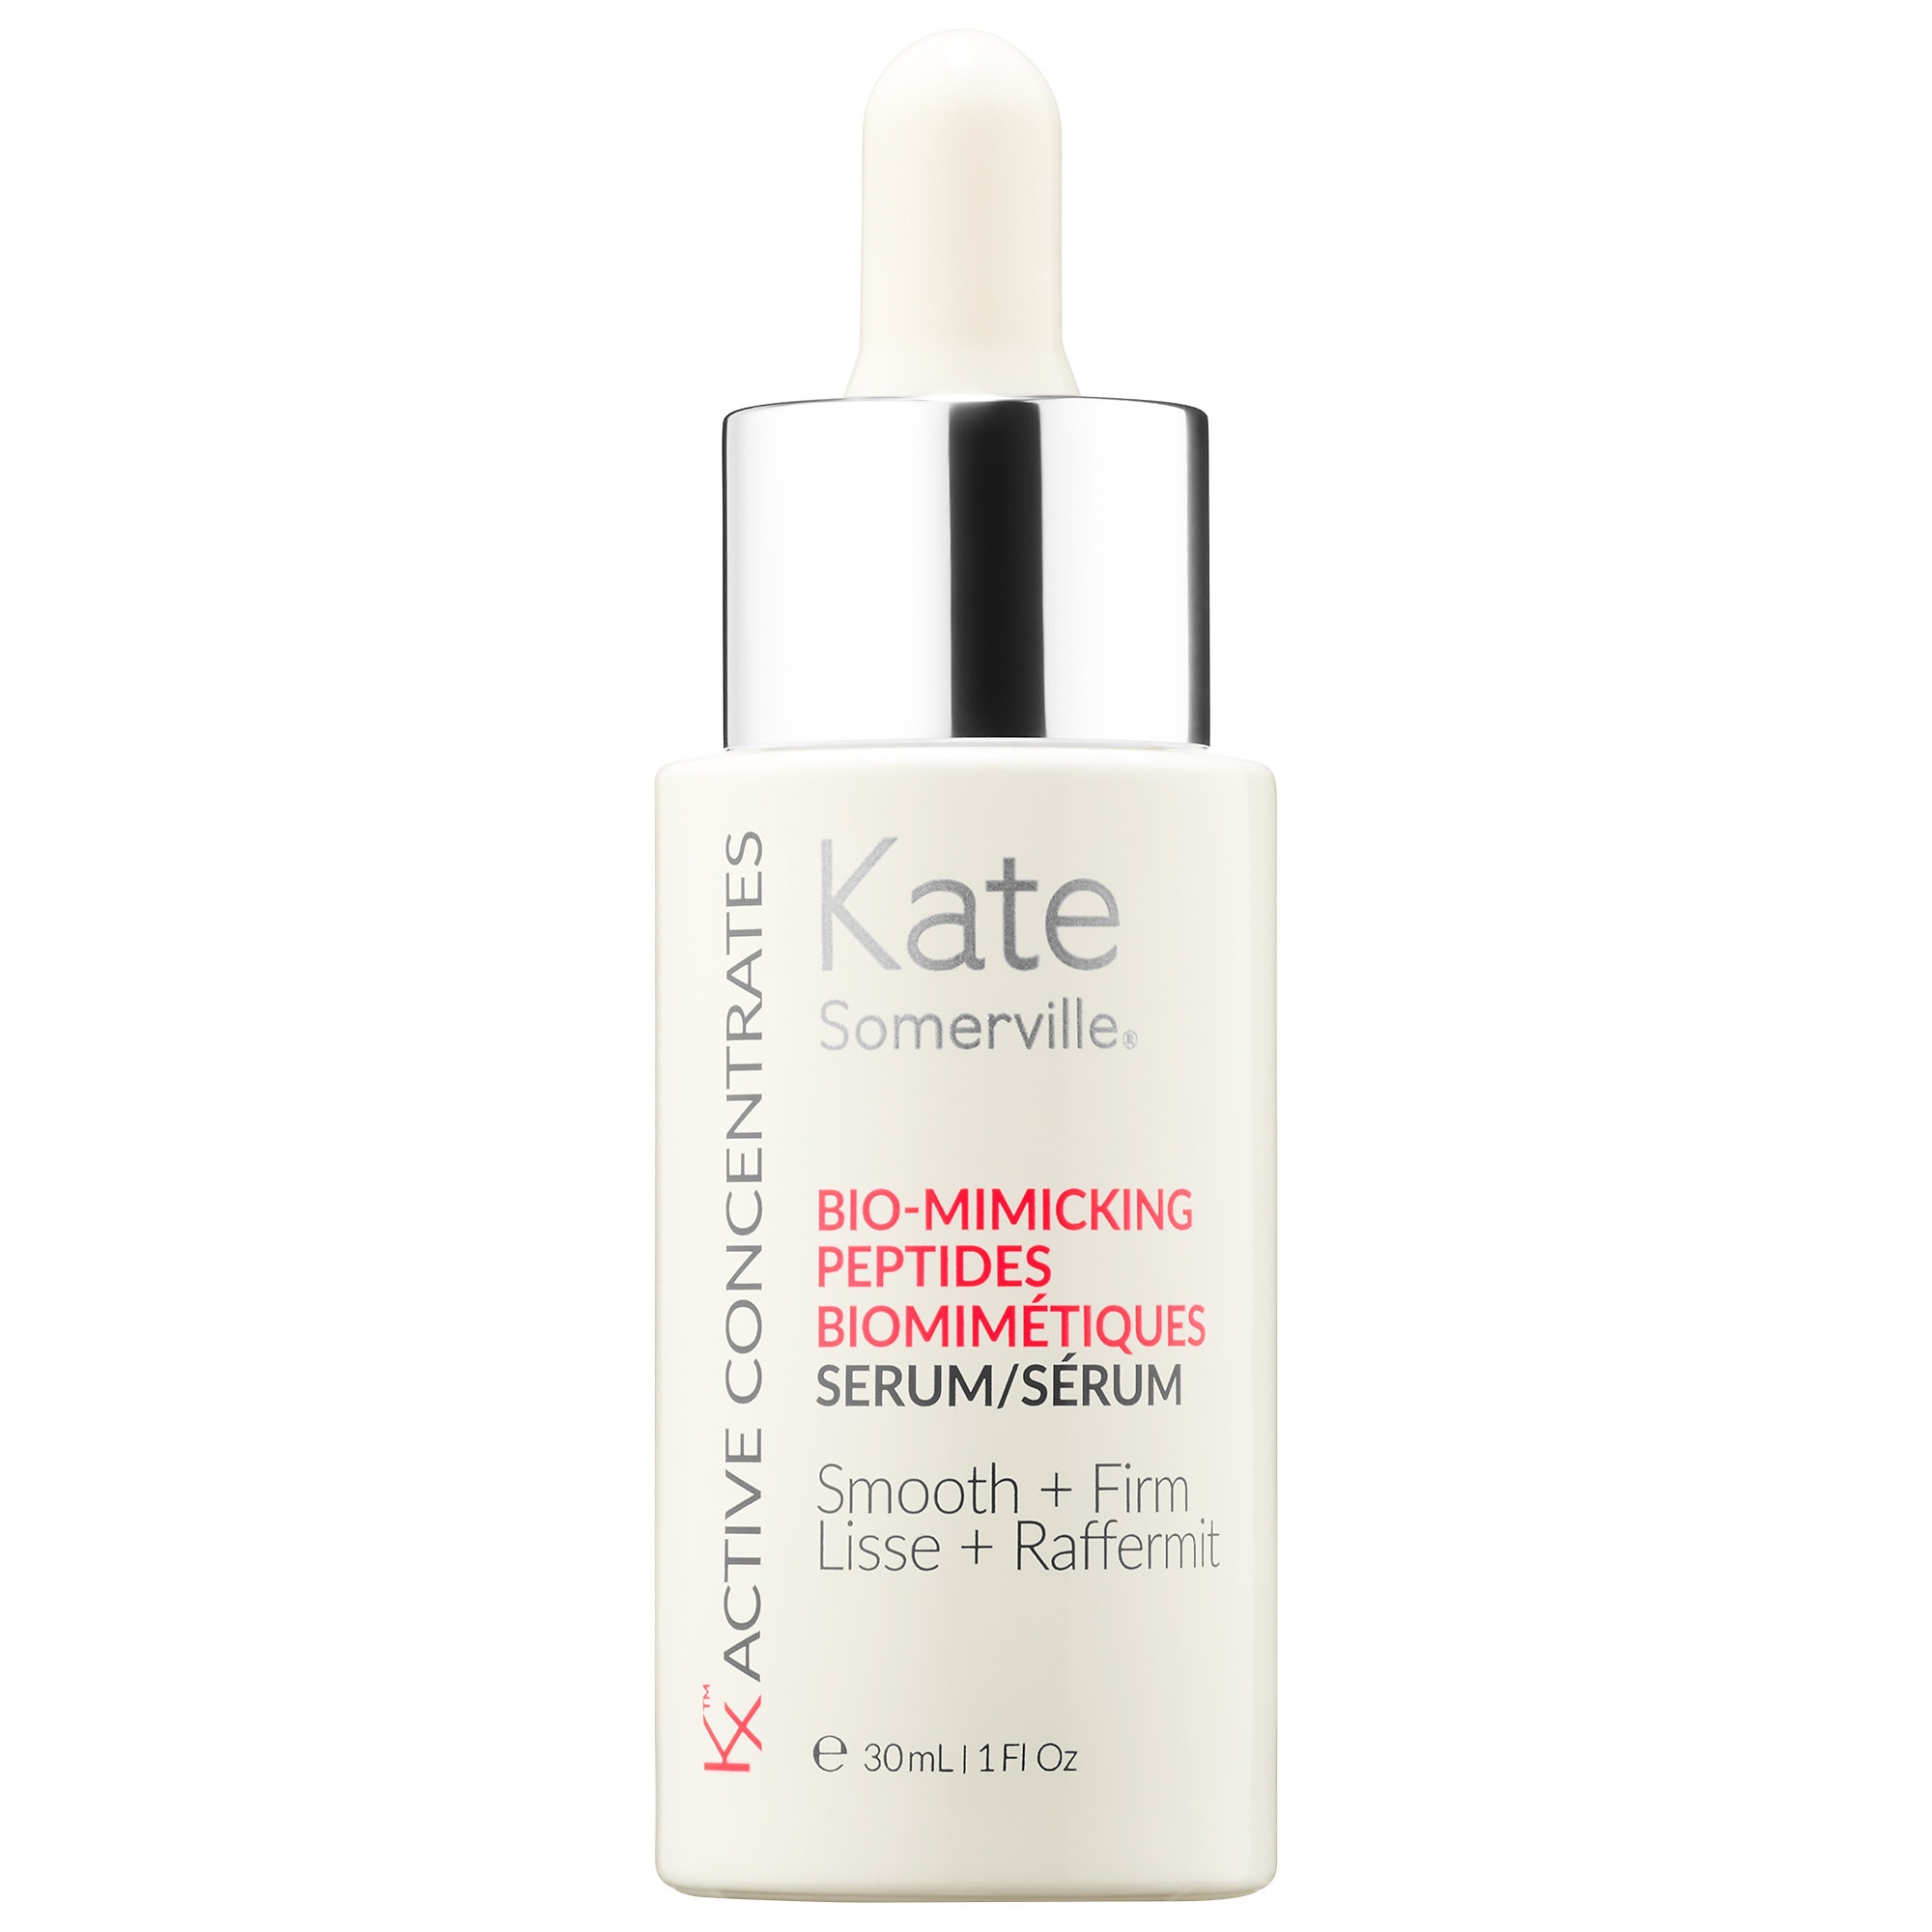 Kate Somerville Skincare - Kx Active Concentrates Bio-Mimicking Peptides Serum